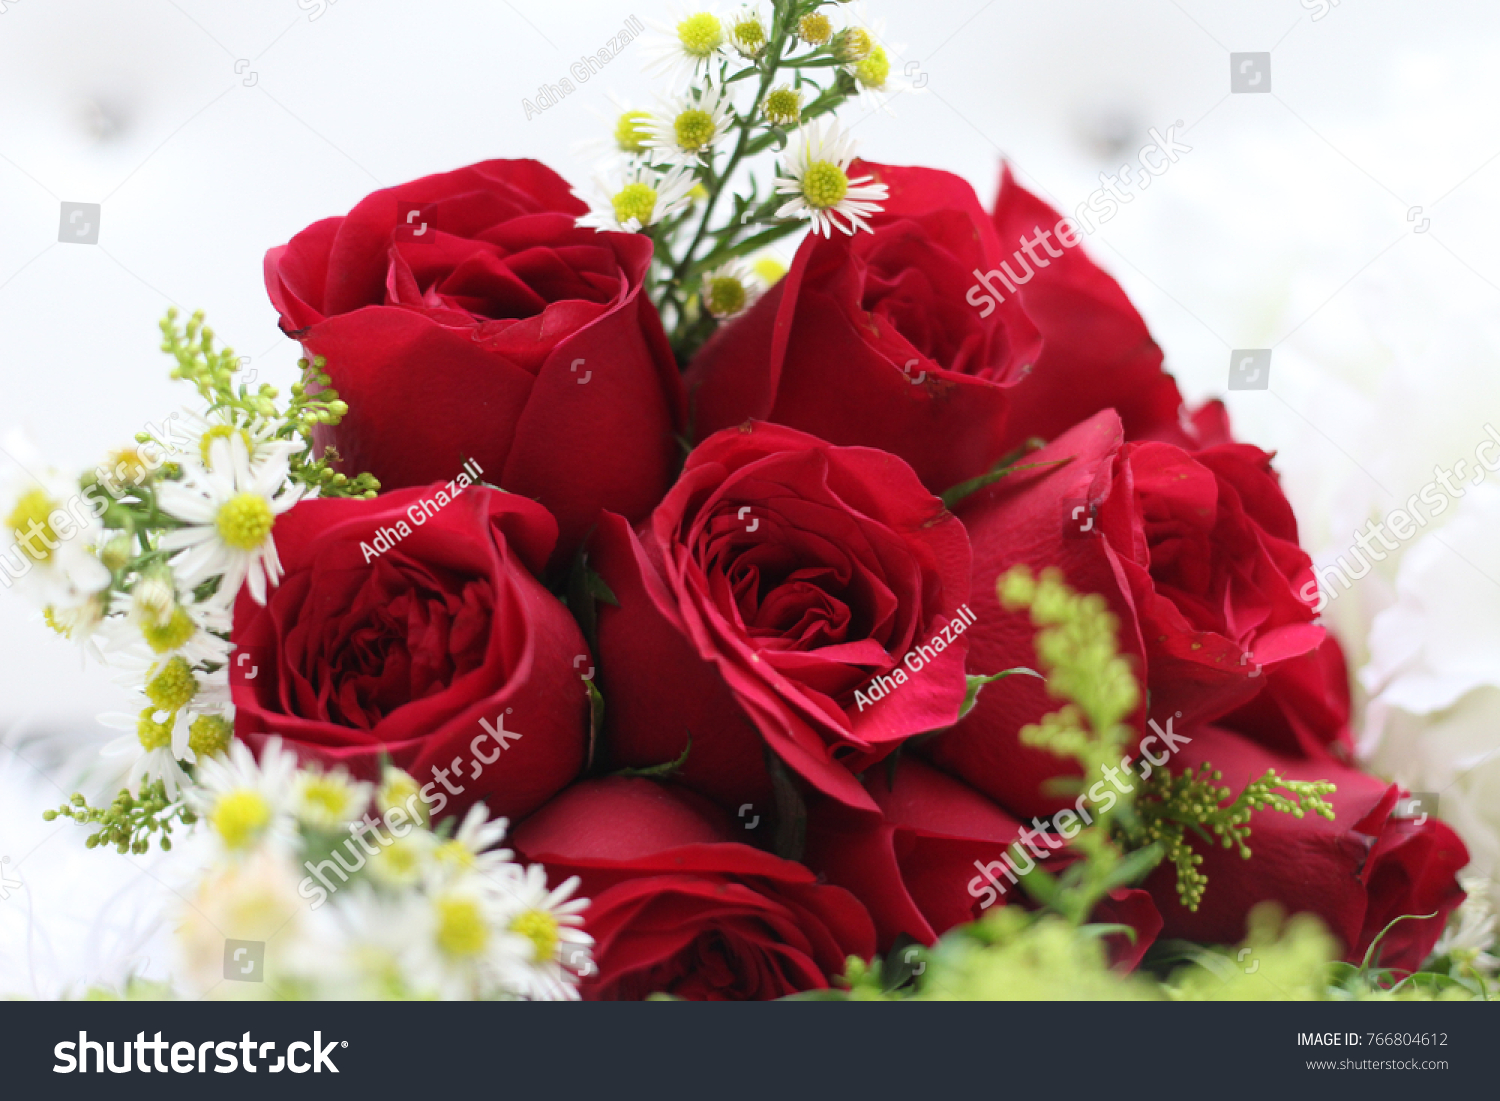 Red Rose Flowers On White Carpet Stock Photo Royalty Free